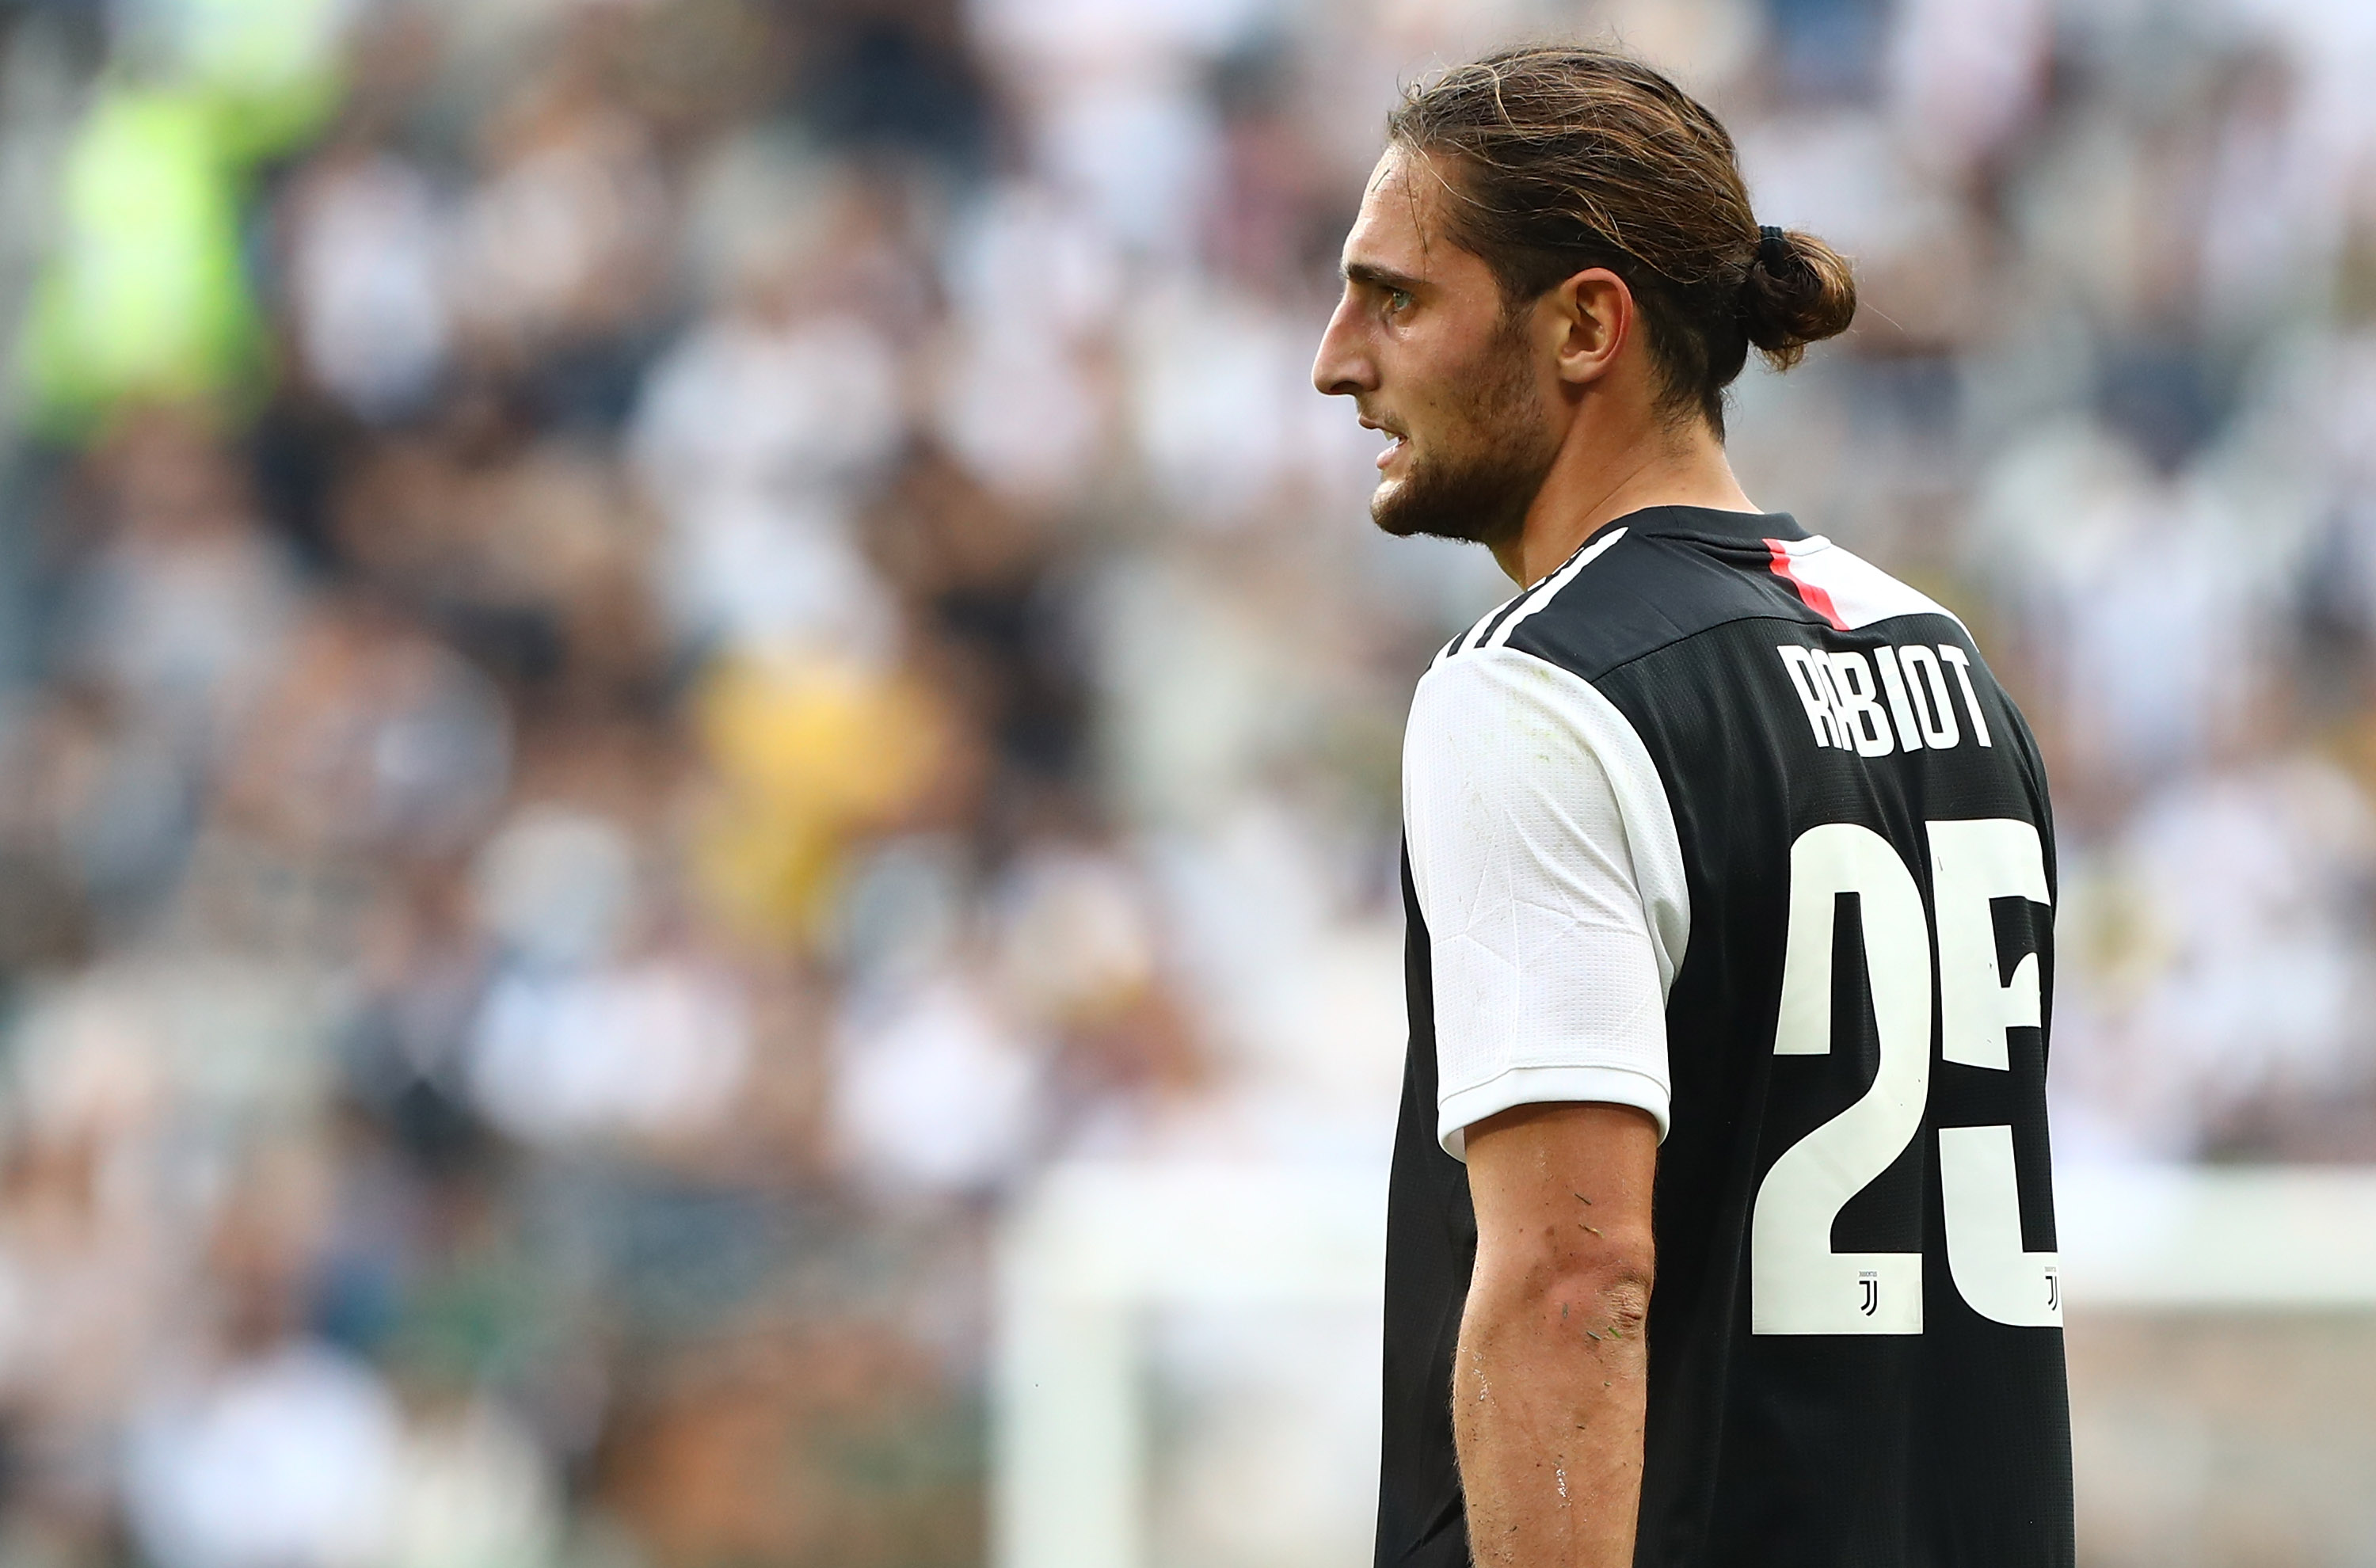 Everton have held informal talks with Adrien Rabiot who is seen in the photo